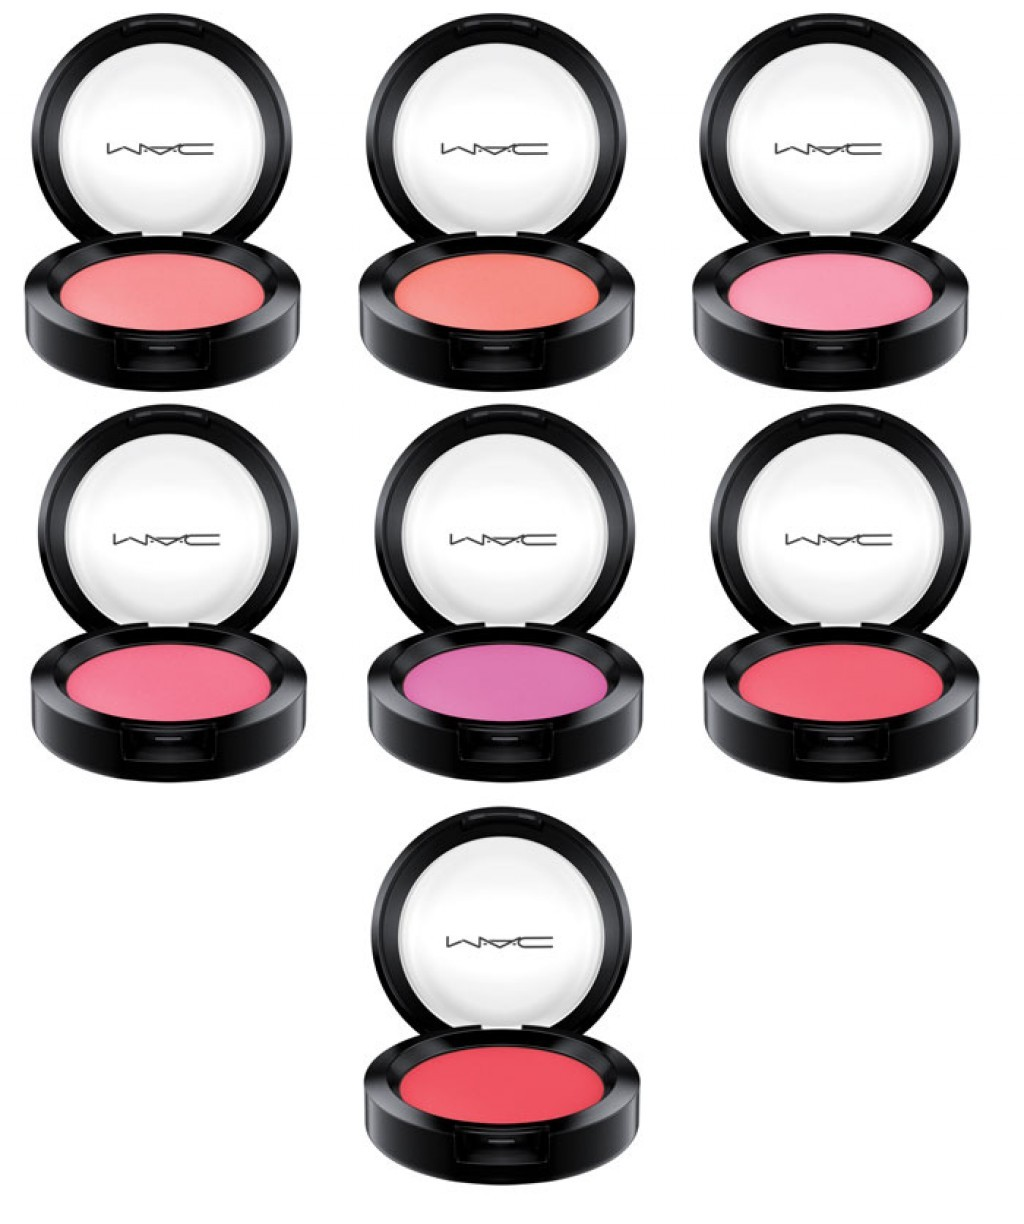 Communication on this topic: MAC Flamingo Park Spring 2019 Makeup Collection, mac-flamingo-park-spring-2019-makeup-collection/